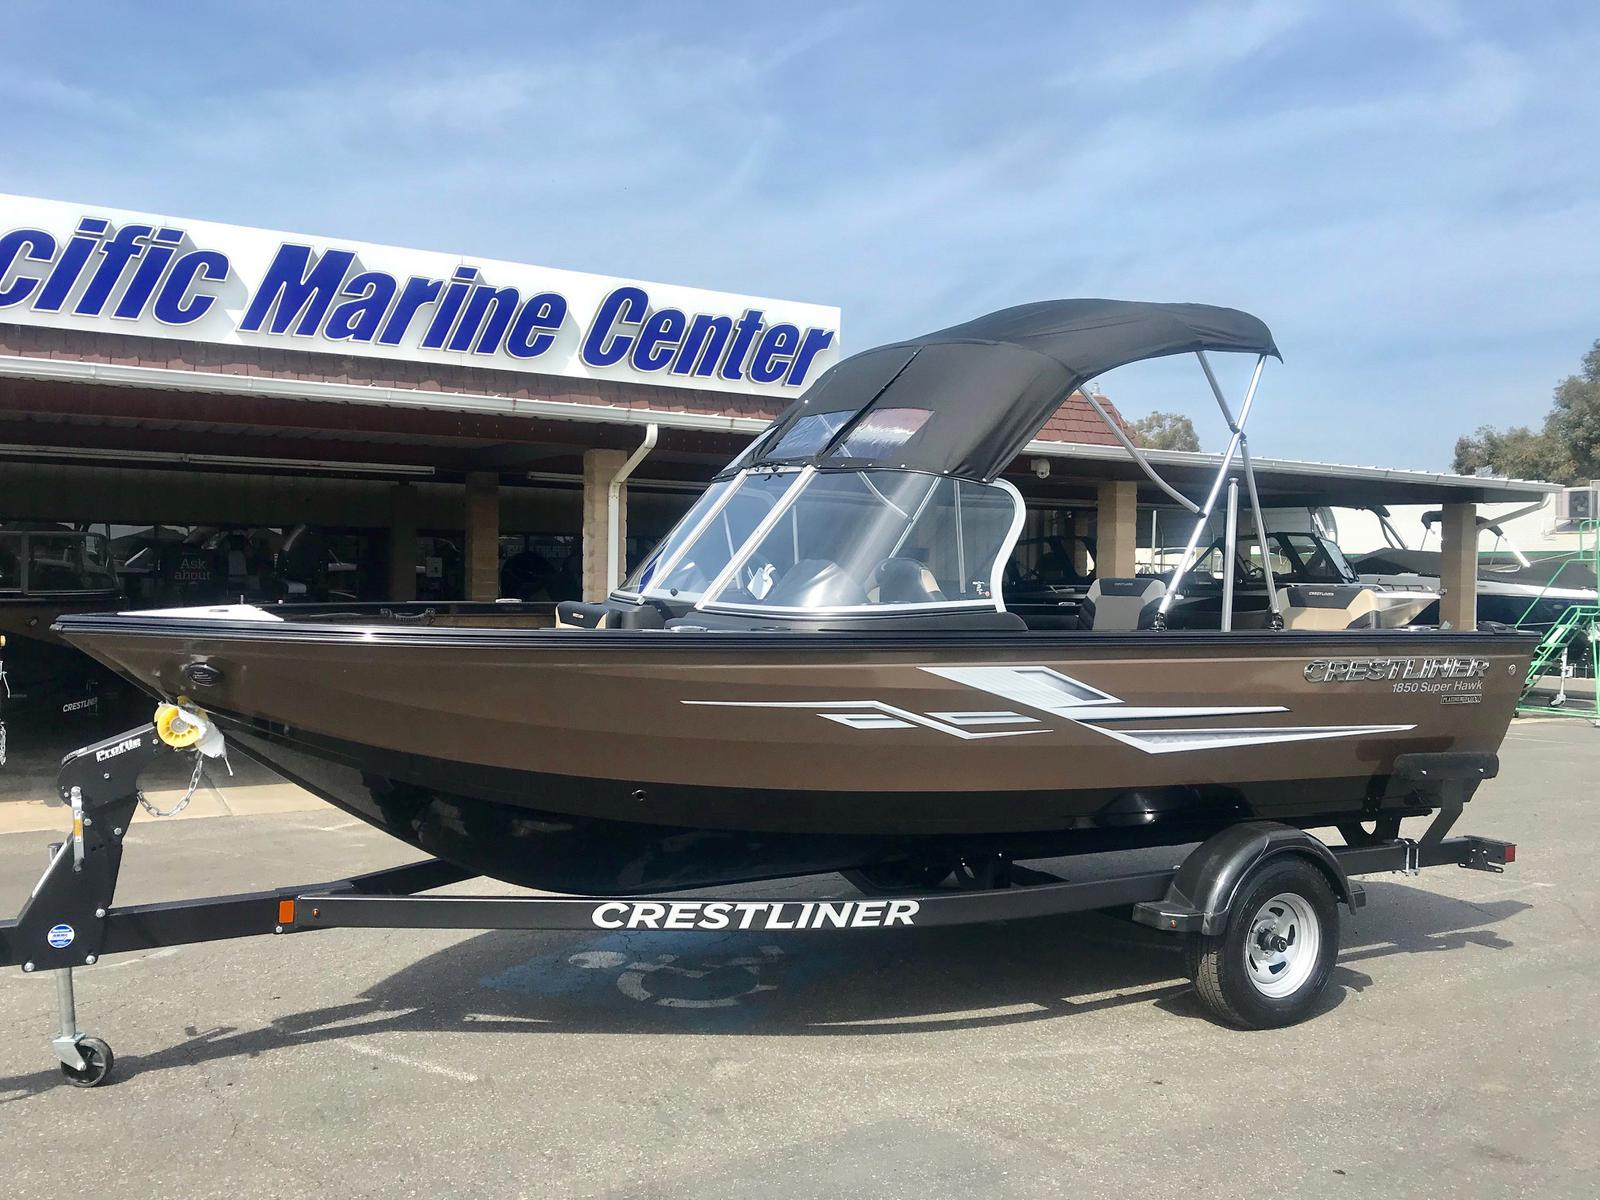 Crestliner 1850 Super Hawk -150hp